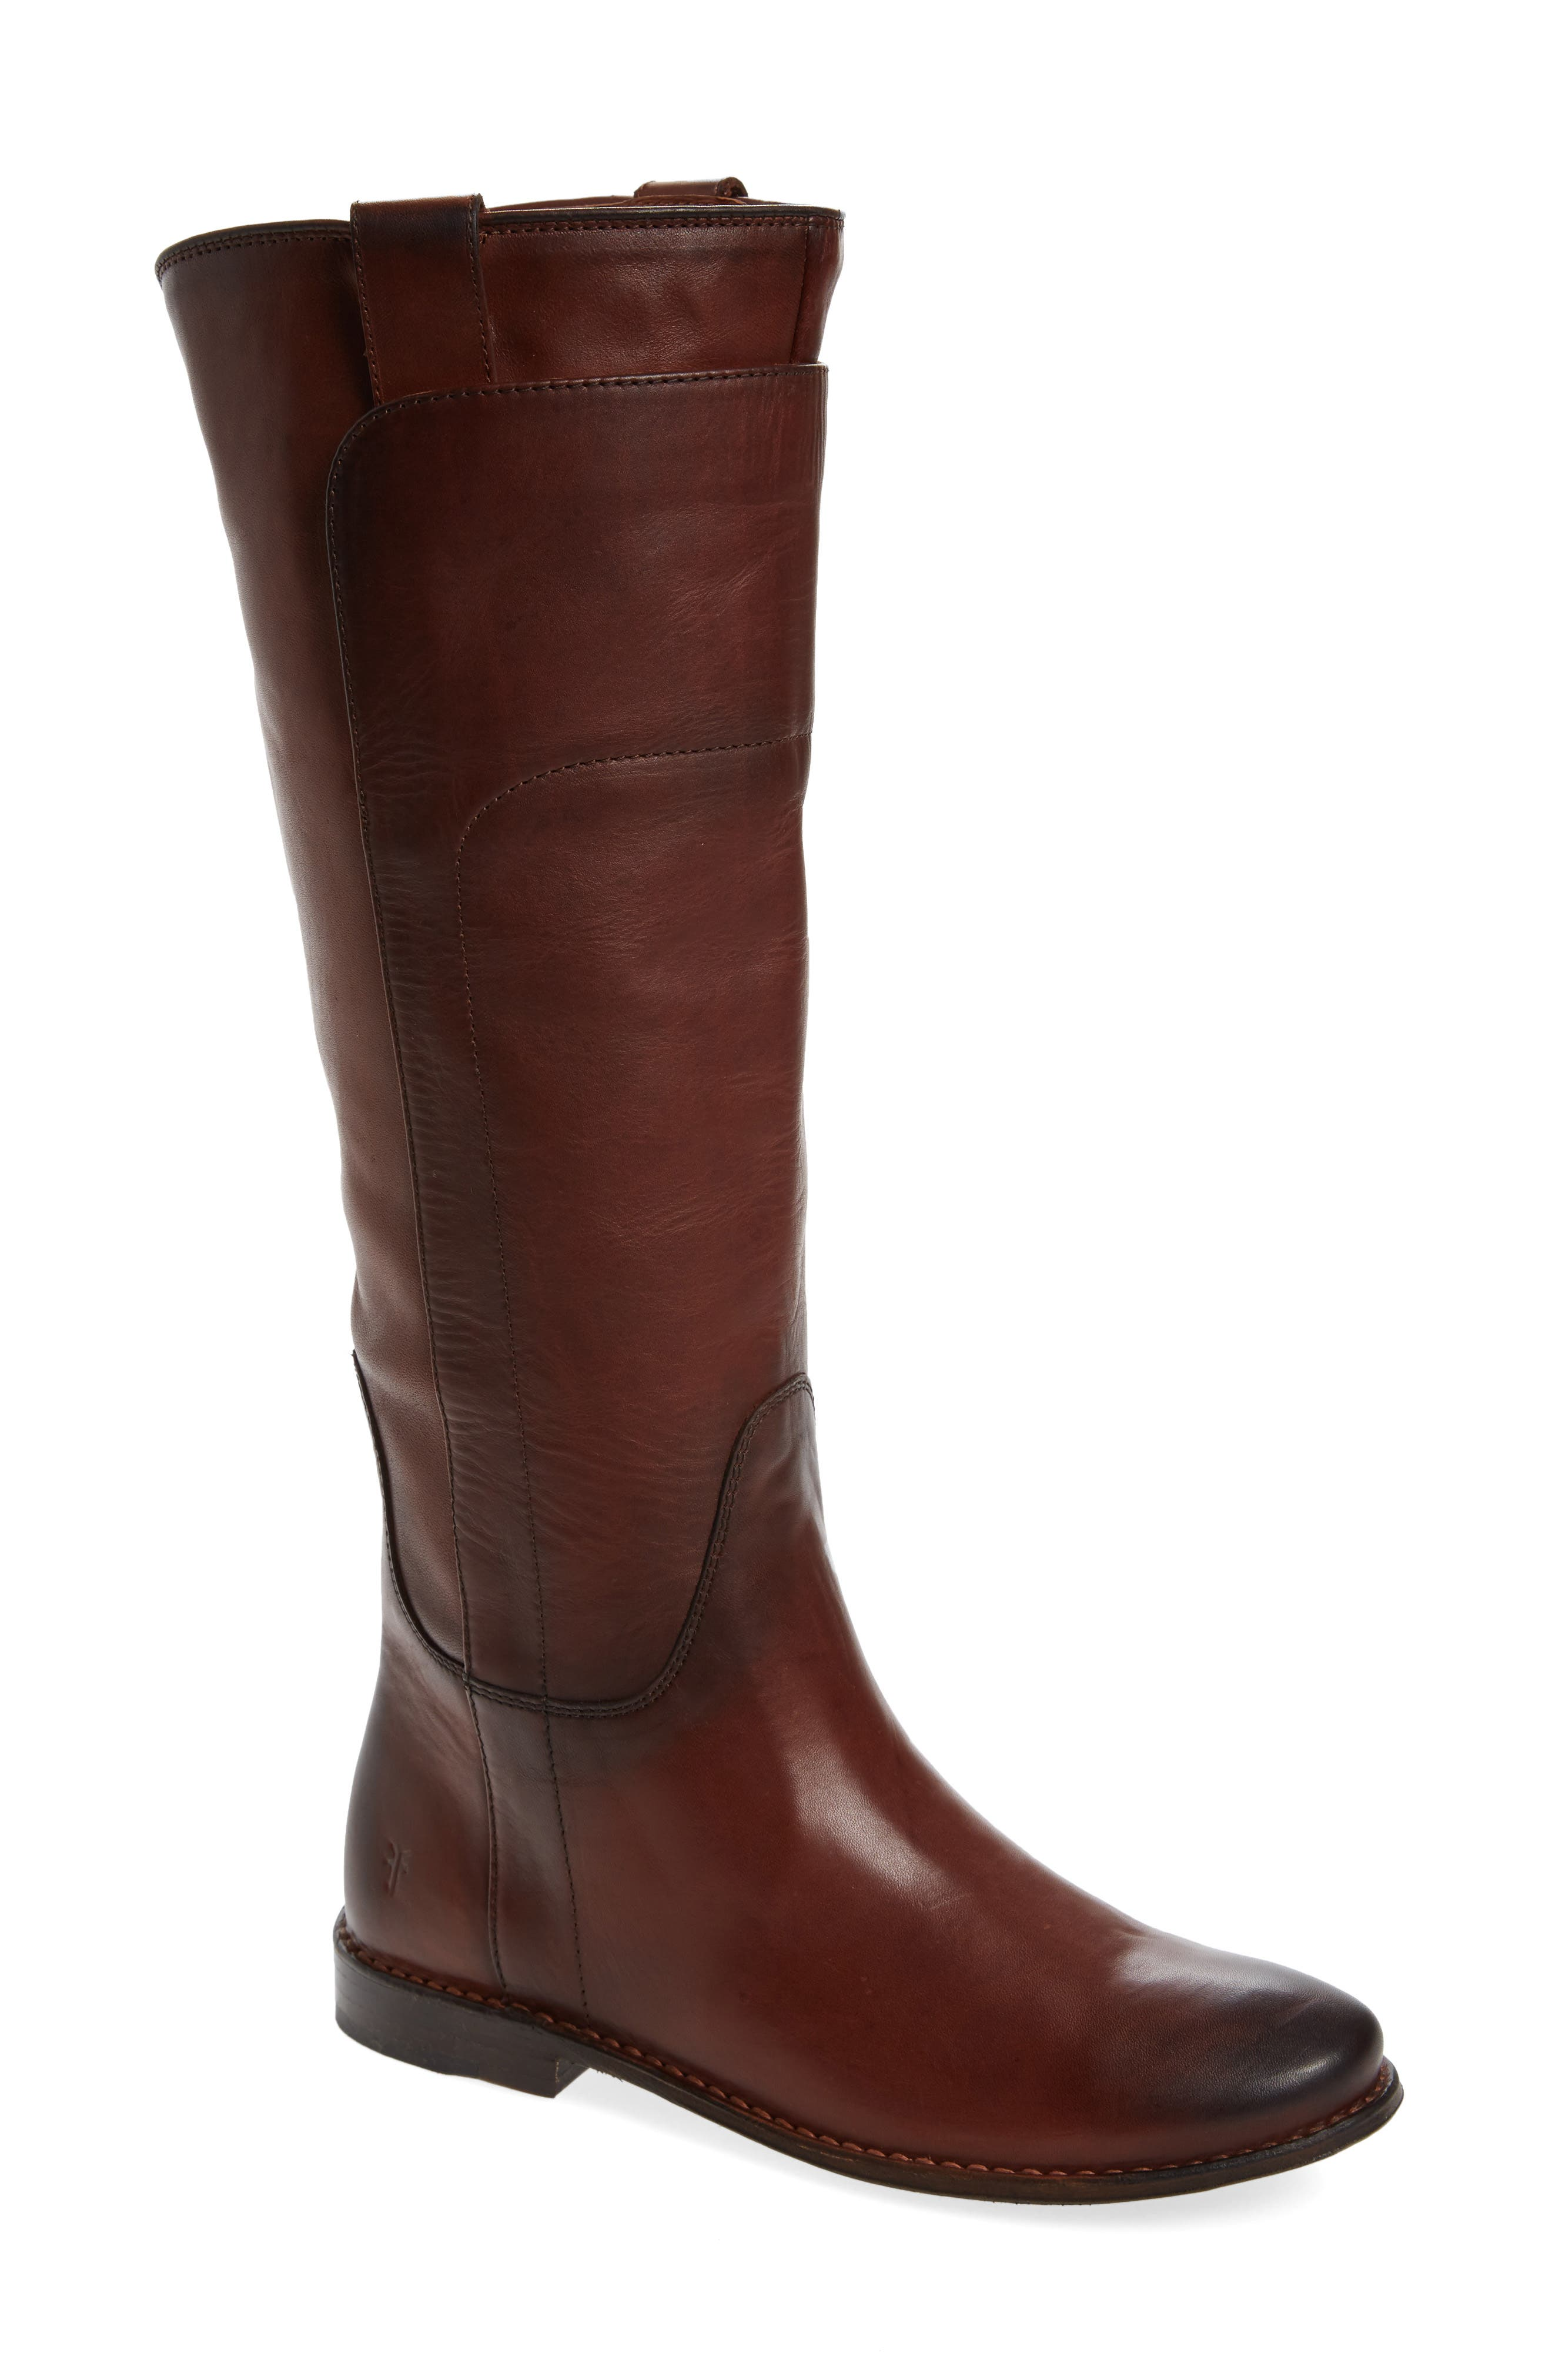 Main Image - Frye Paige Tall Riding Boot (Women)